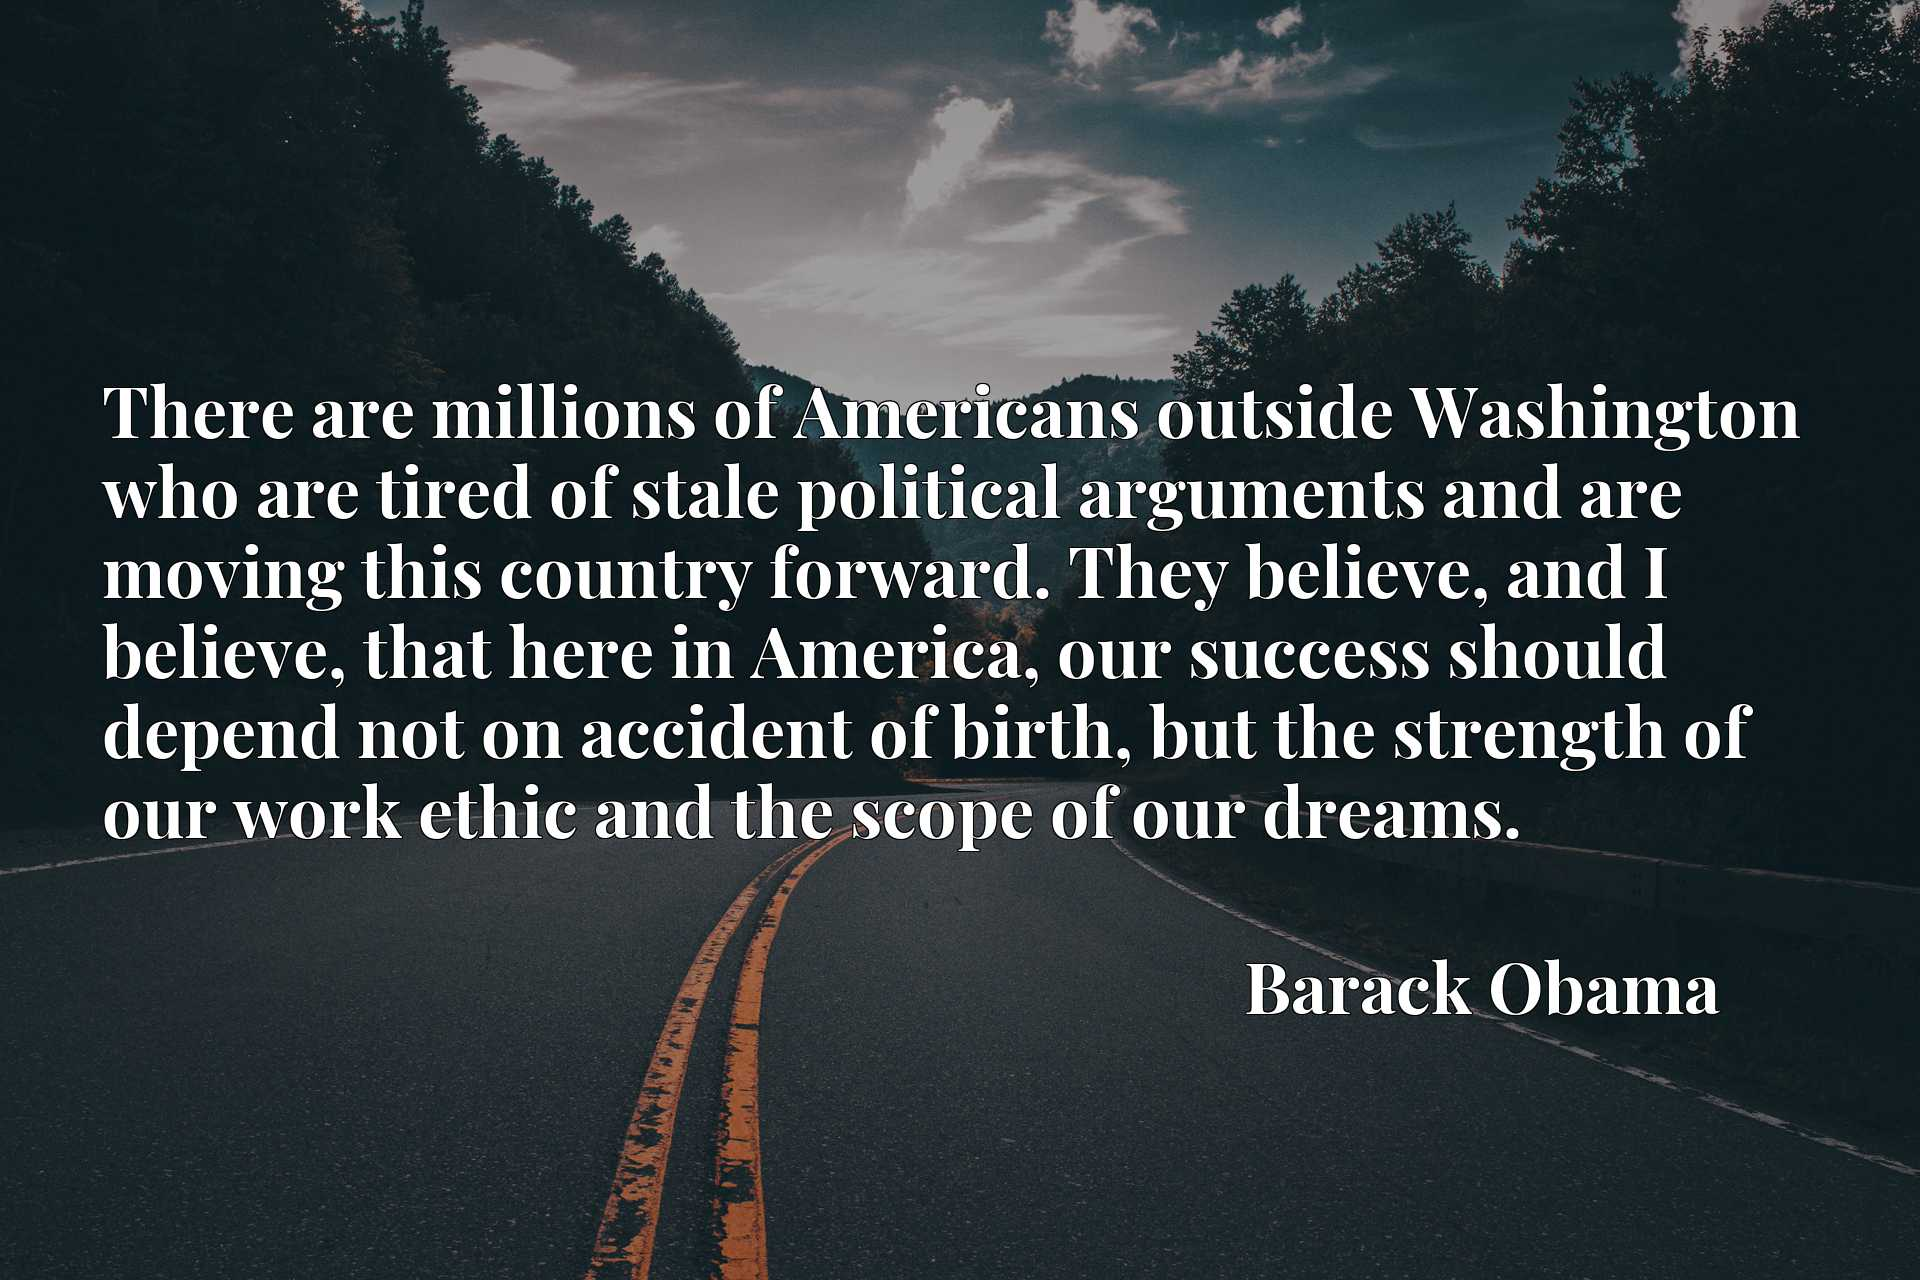 There are millions of Americans outside Washington who are tired of stale political arguments and are moving this country forward. They believe, and I believe, that here in America, our success should depend not on accident of birth, but the strength of our work ethic and the scope of our dreams.